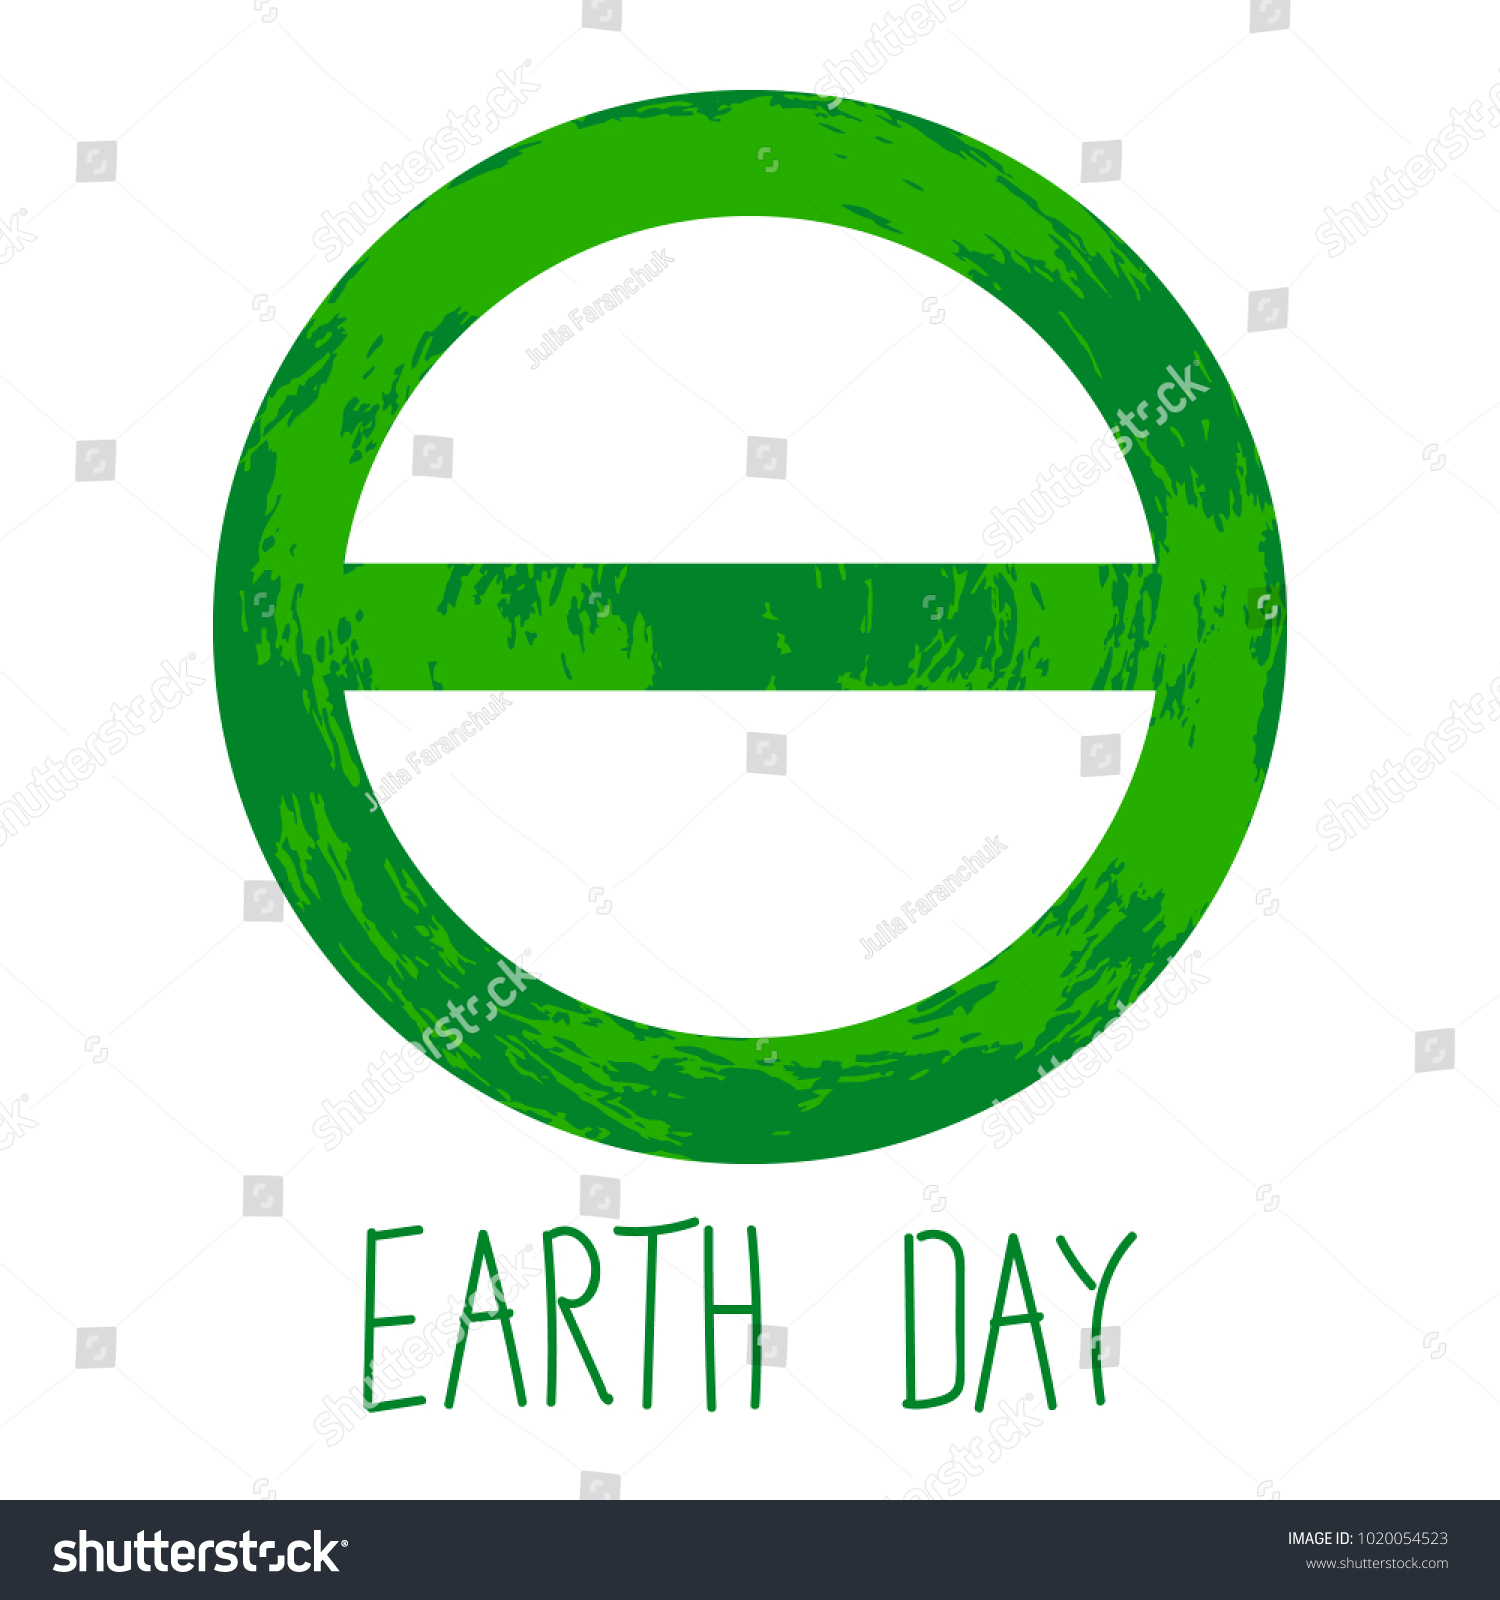 Symbol earth day greek letter theta stock vector 1020054523 symbol of earth day is the greek letter of theta biocorpaavc Image collections